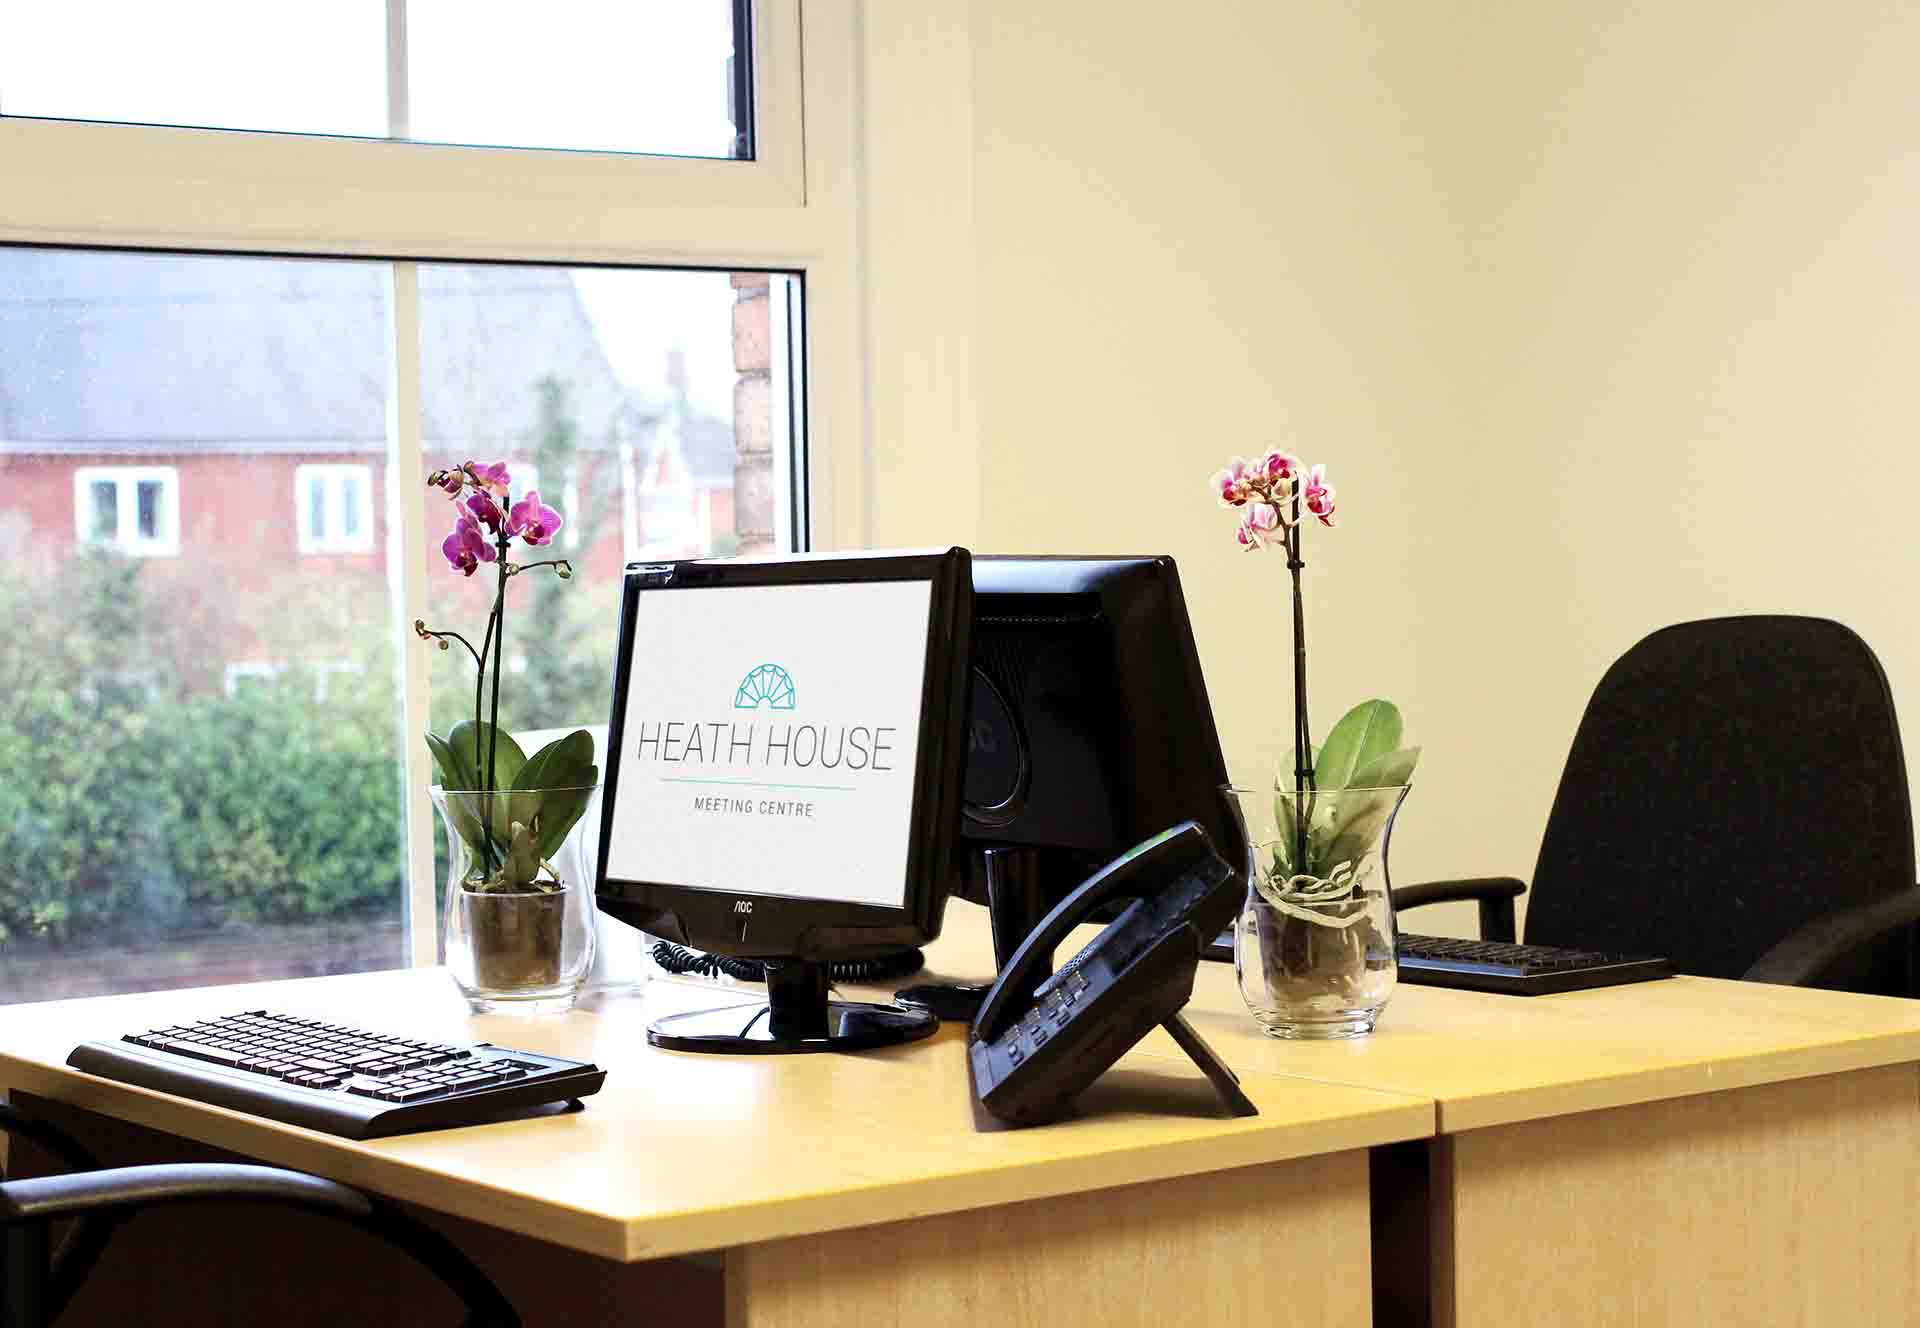 Serviced office accommodation - Heath House Conference Centre, Uttoxeter, Staffordshire